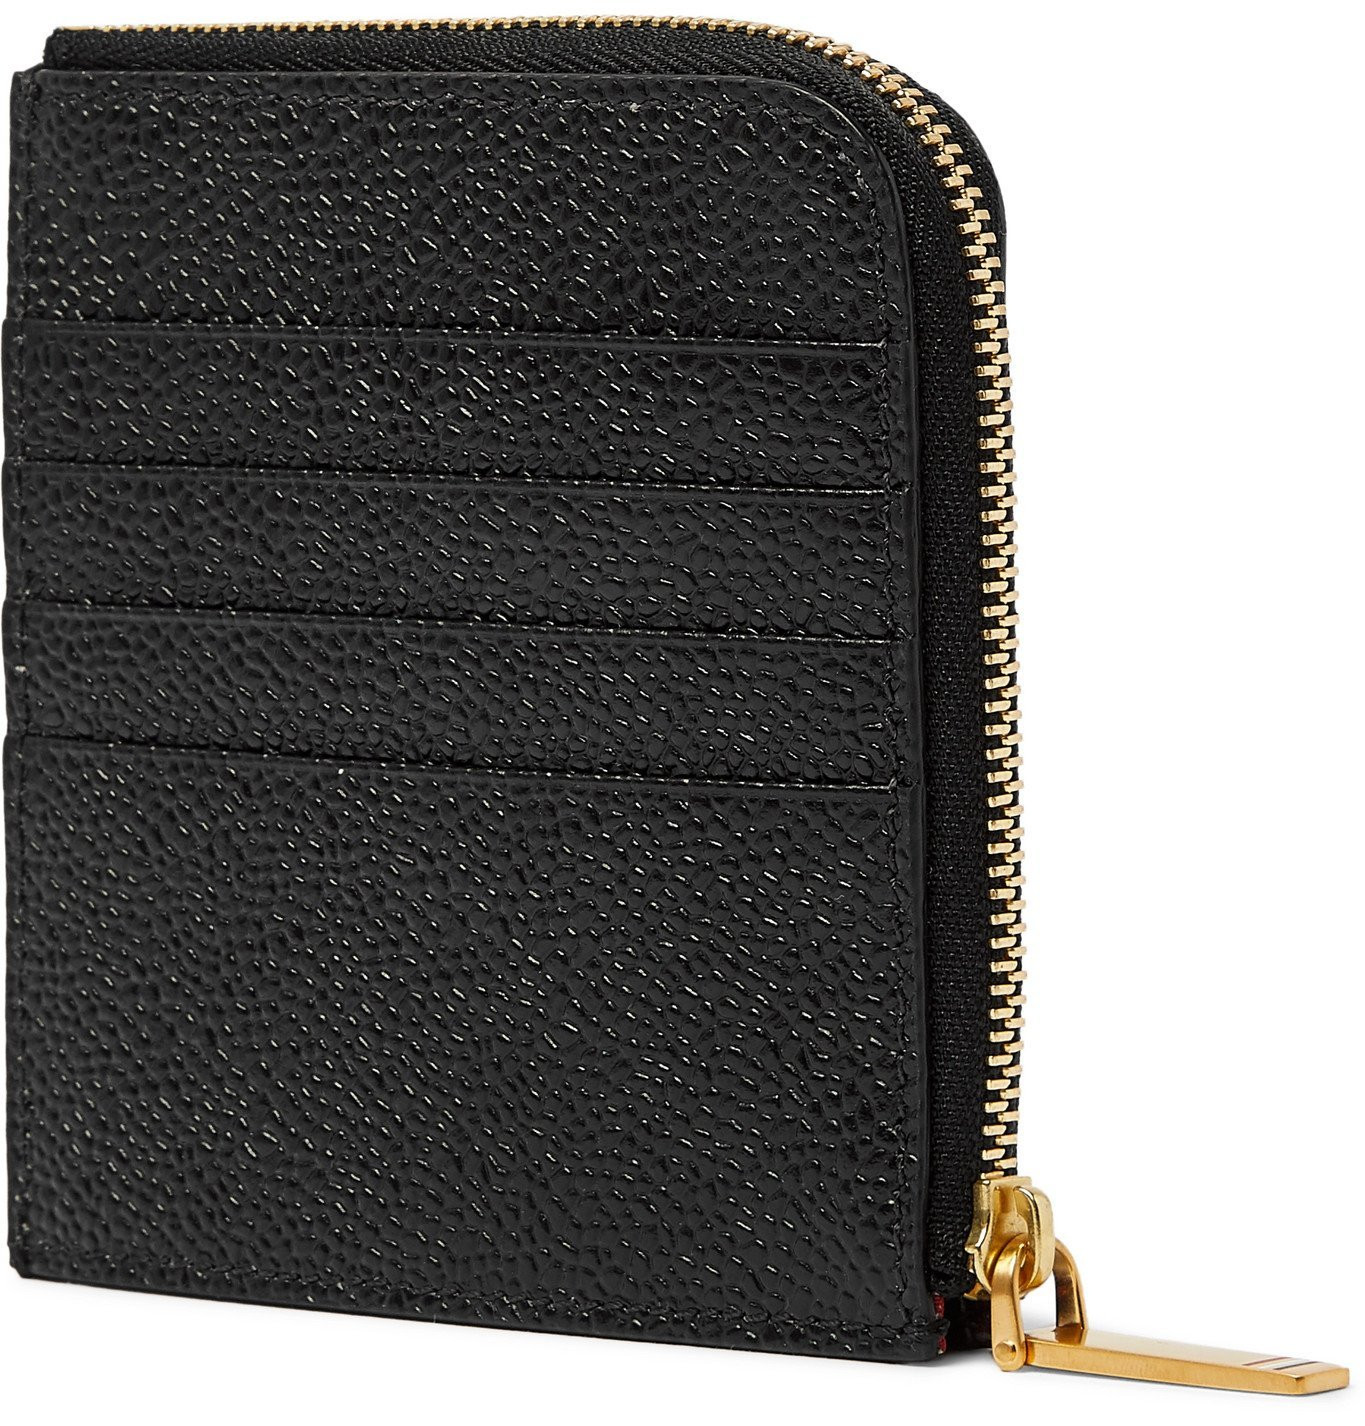 Thom Browne - Grosgrain-Trimmed Pebble-Grain Leather Zip-Around Wallet - Black